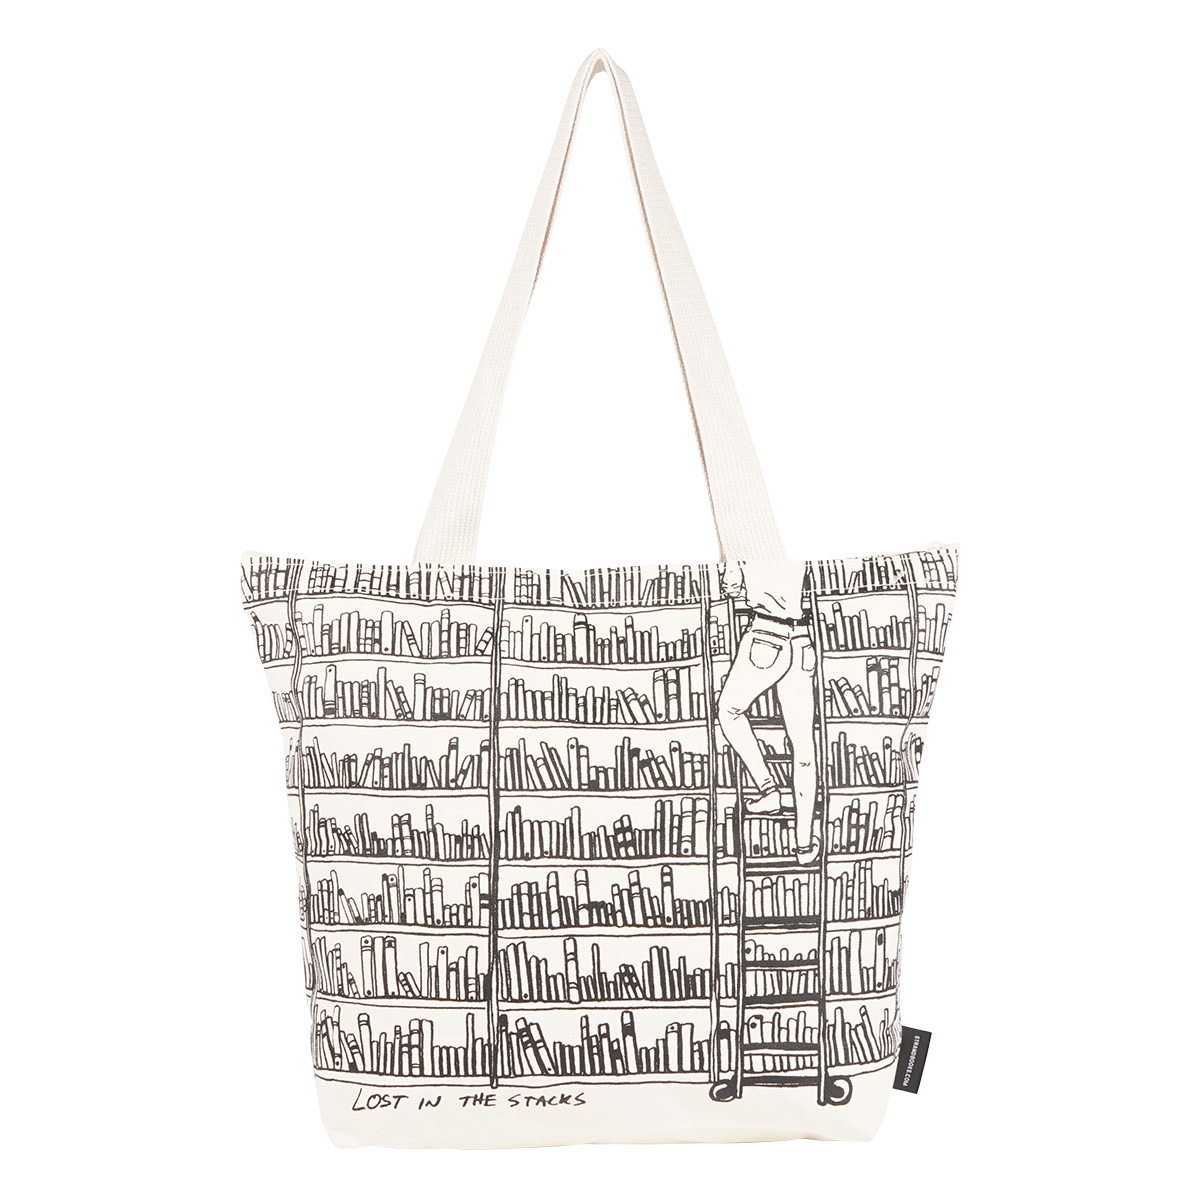 【STRANDBOOKSTORE】Large Tote Lost in the Stacks ラージトートバッグ (WHITE) 9111116803